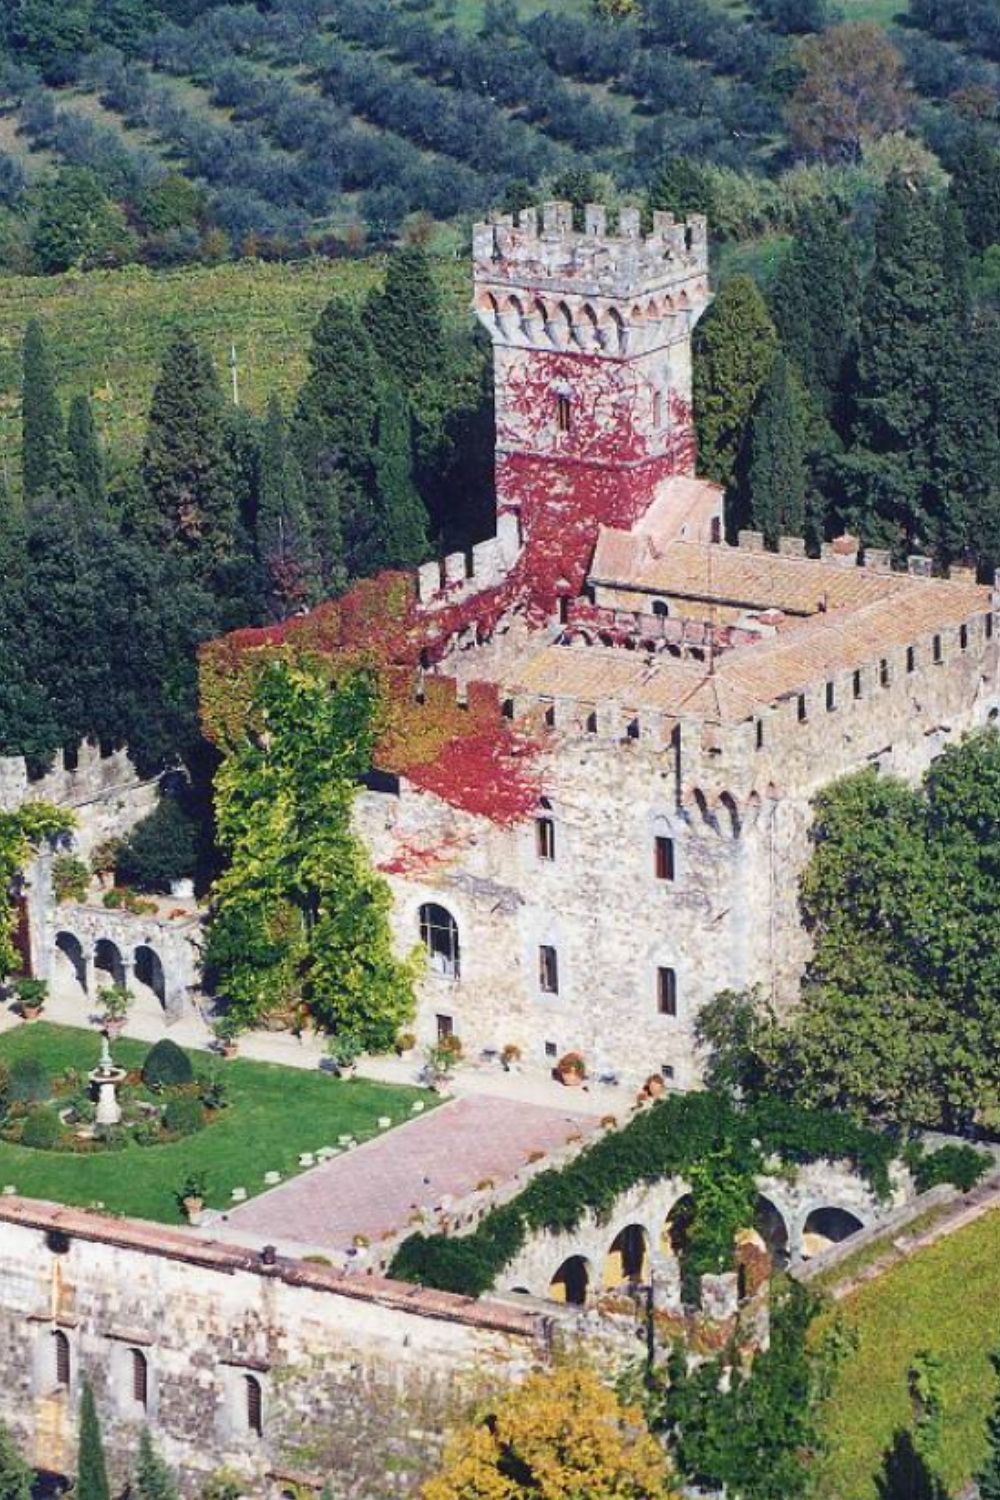 Castle Castello Di Vincigliata, a castle for a destination wedding in Italy